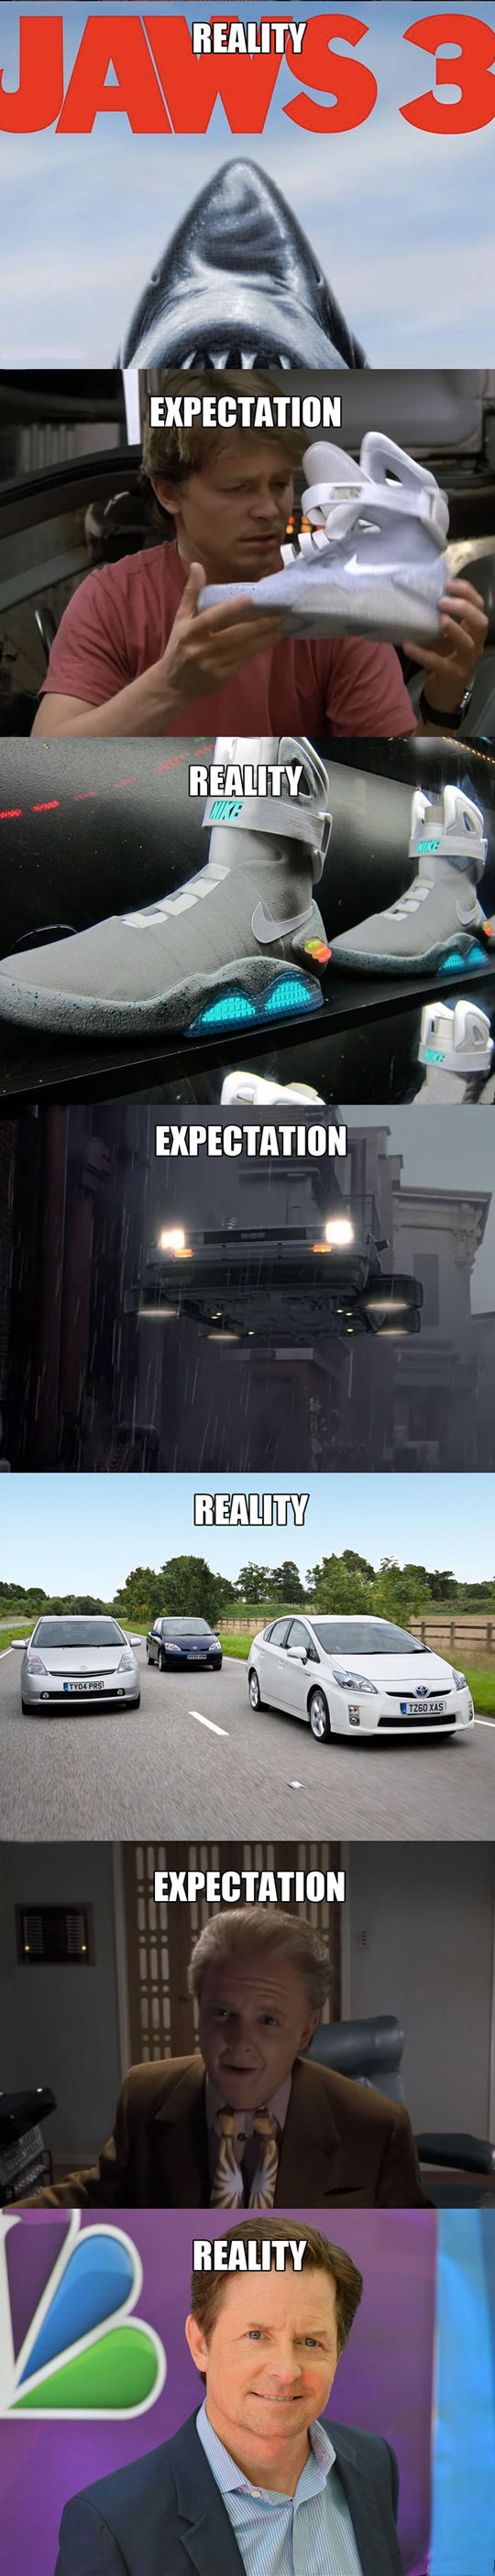 funny-reality-expectation-future